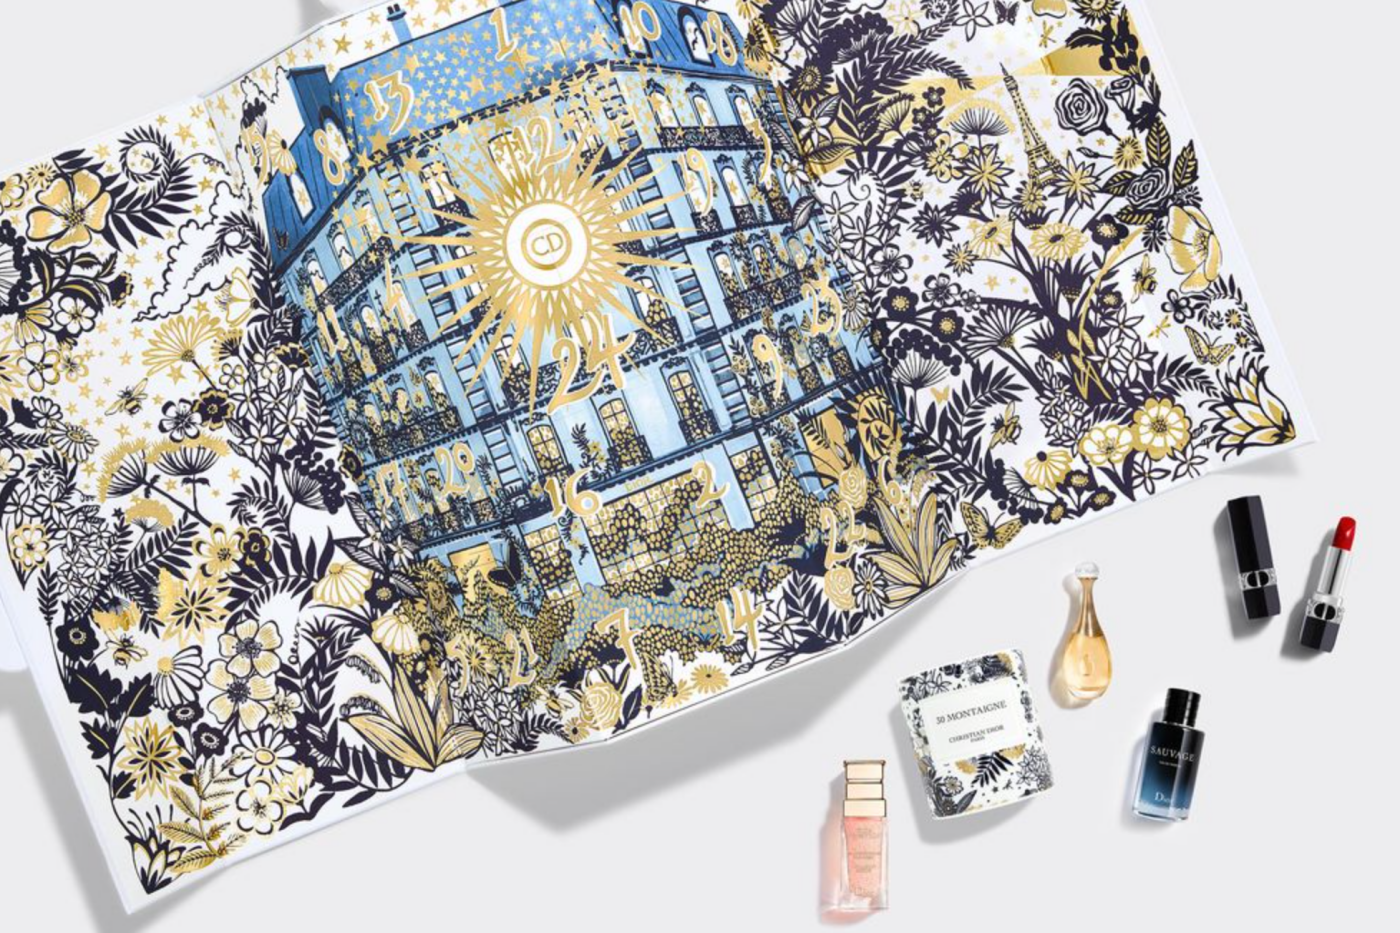 Dior Beauty Advent 2021